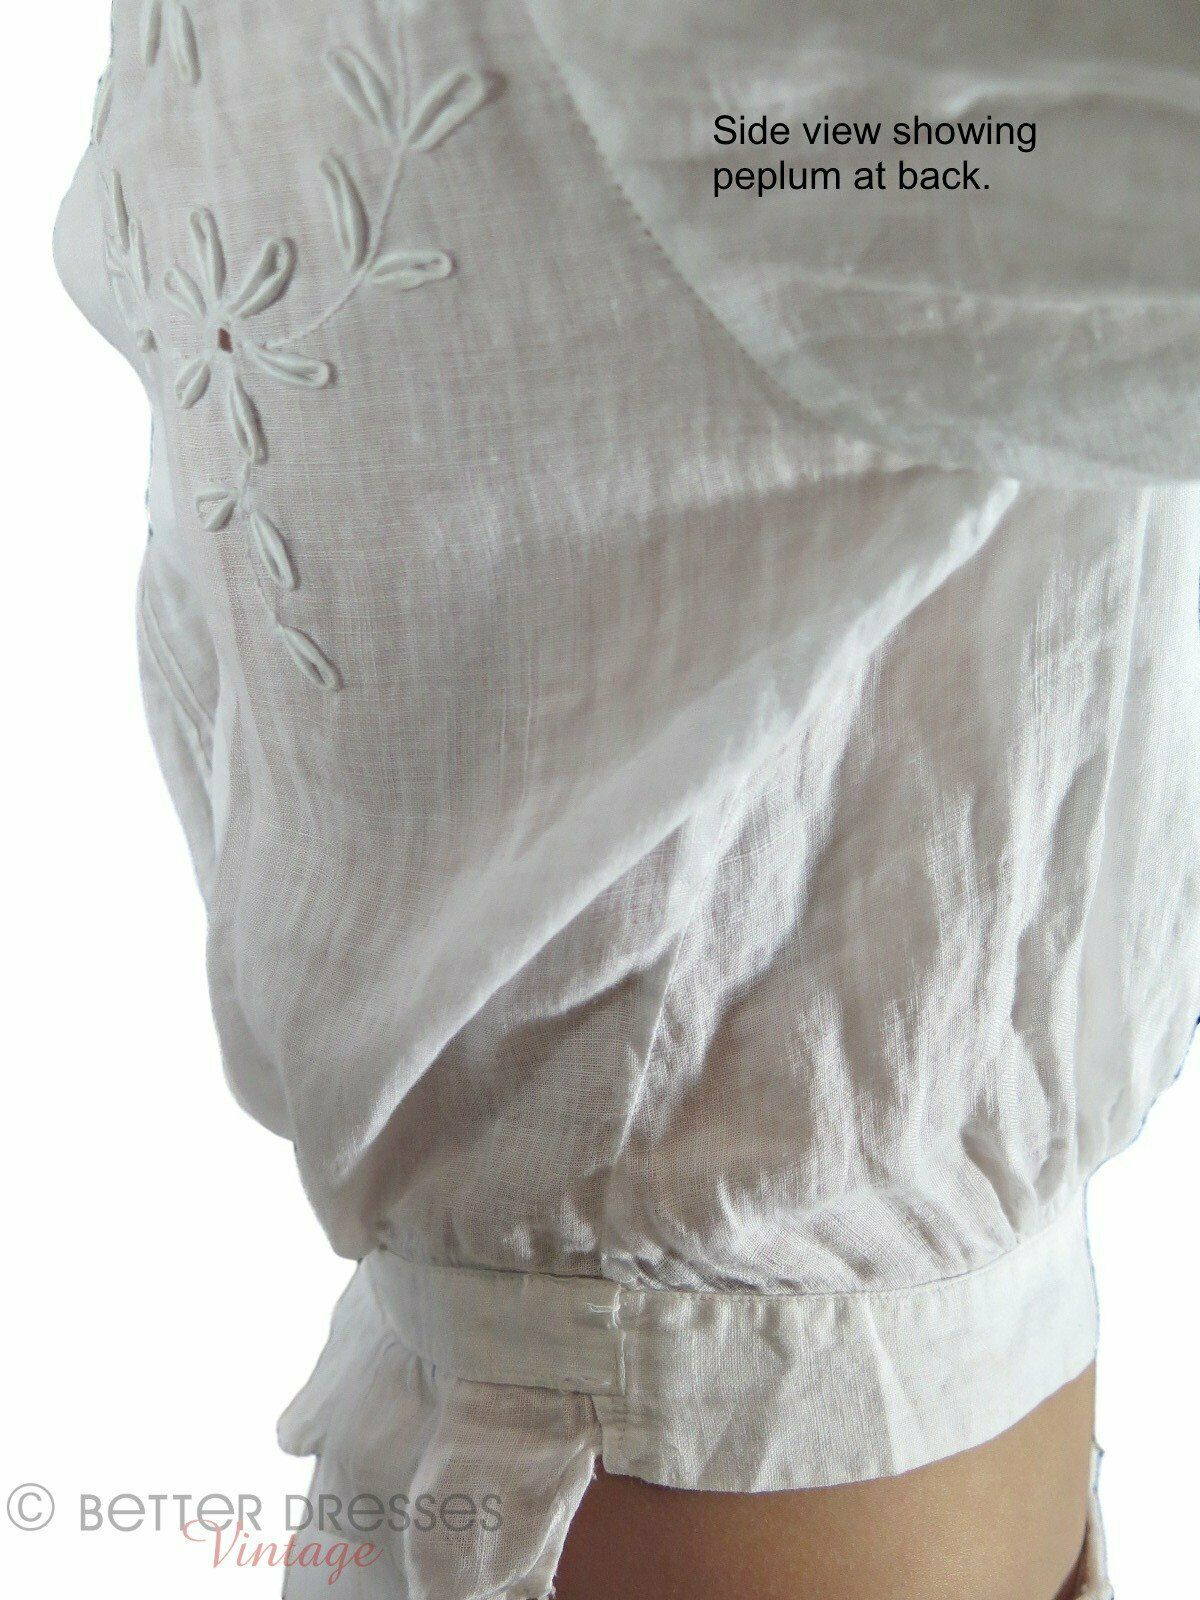 Antique Embroidered Blouse - xs, sm - image 8